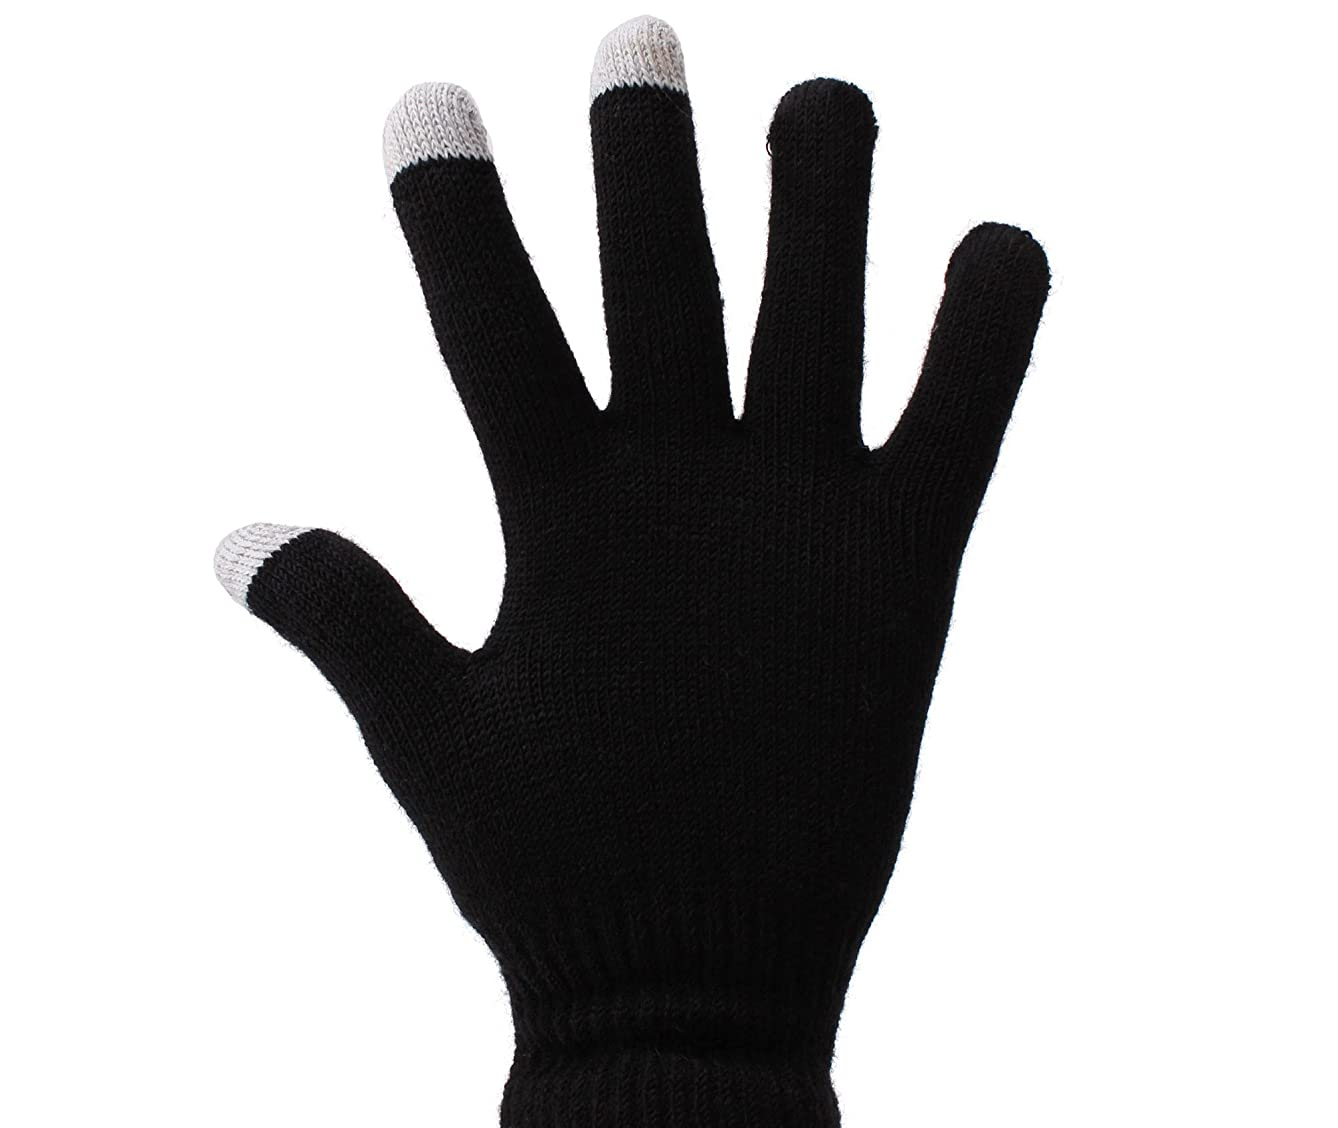 DURAGADGET Small Black Conductive Touch Screen Gloves for BlackBerry Torch 9810 Unlocked GSM Phone with OS 7.0, Touchscreen